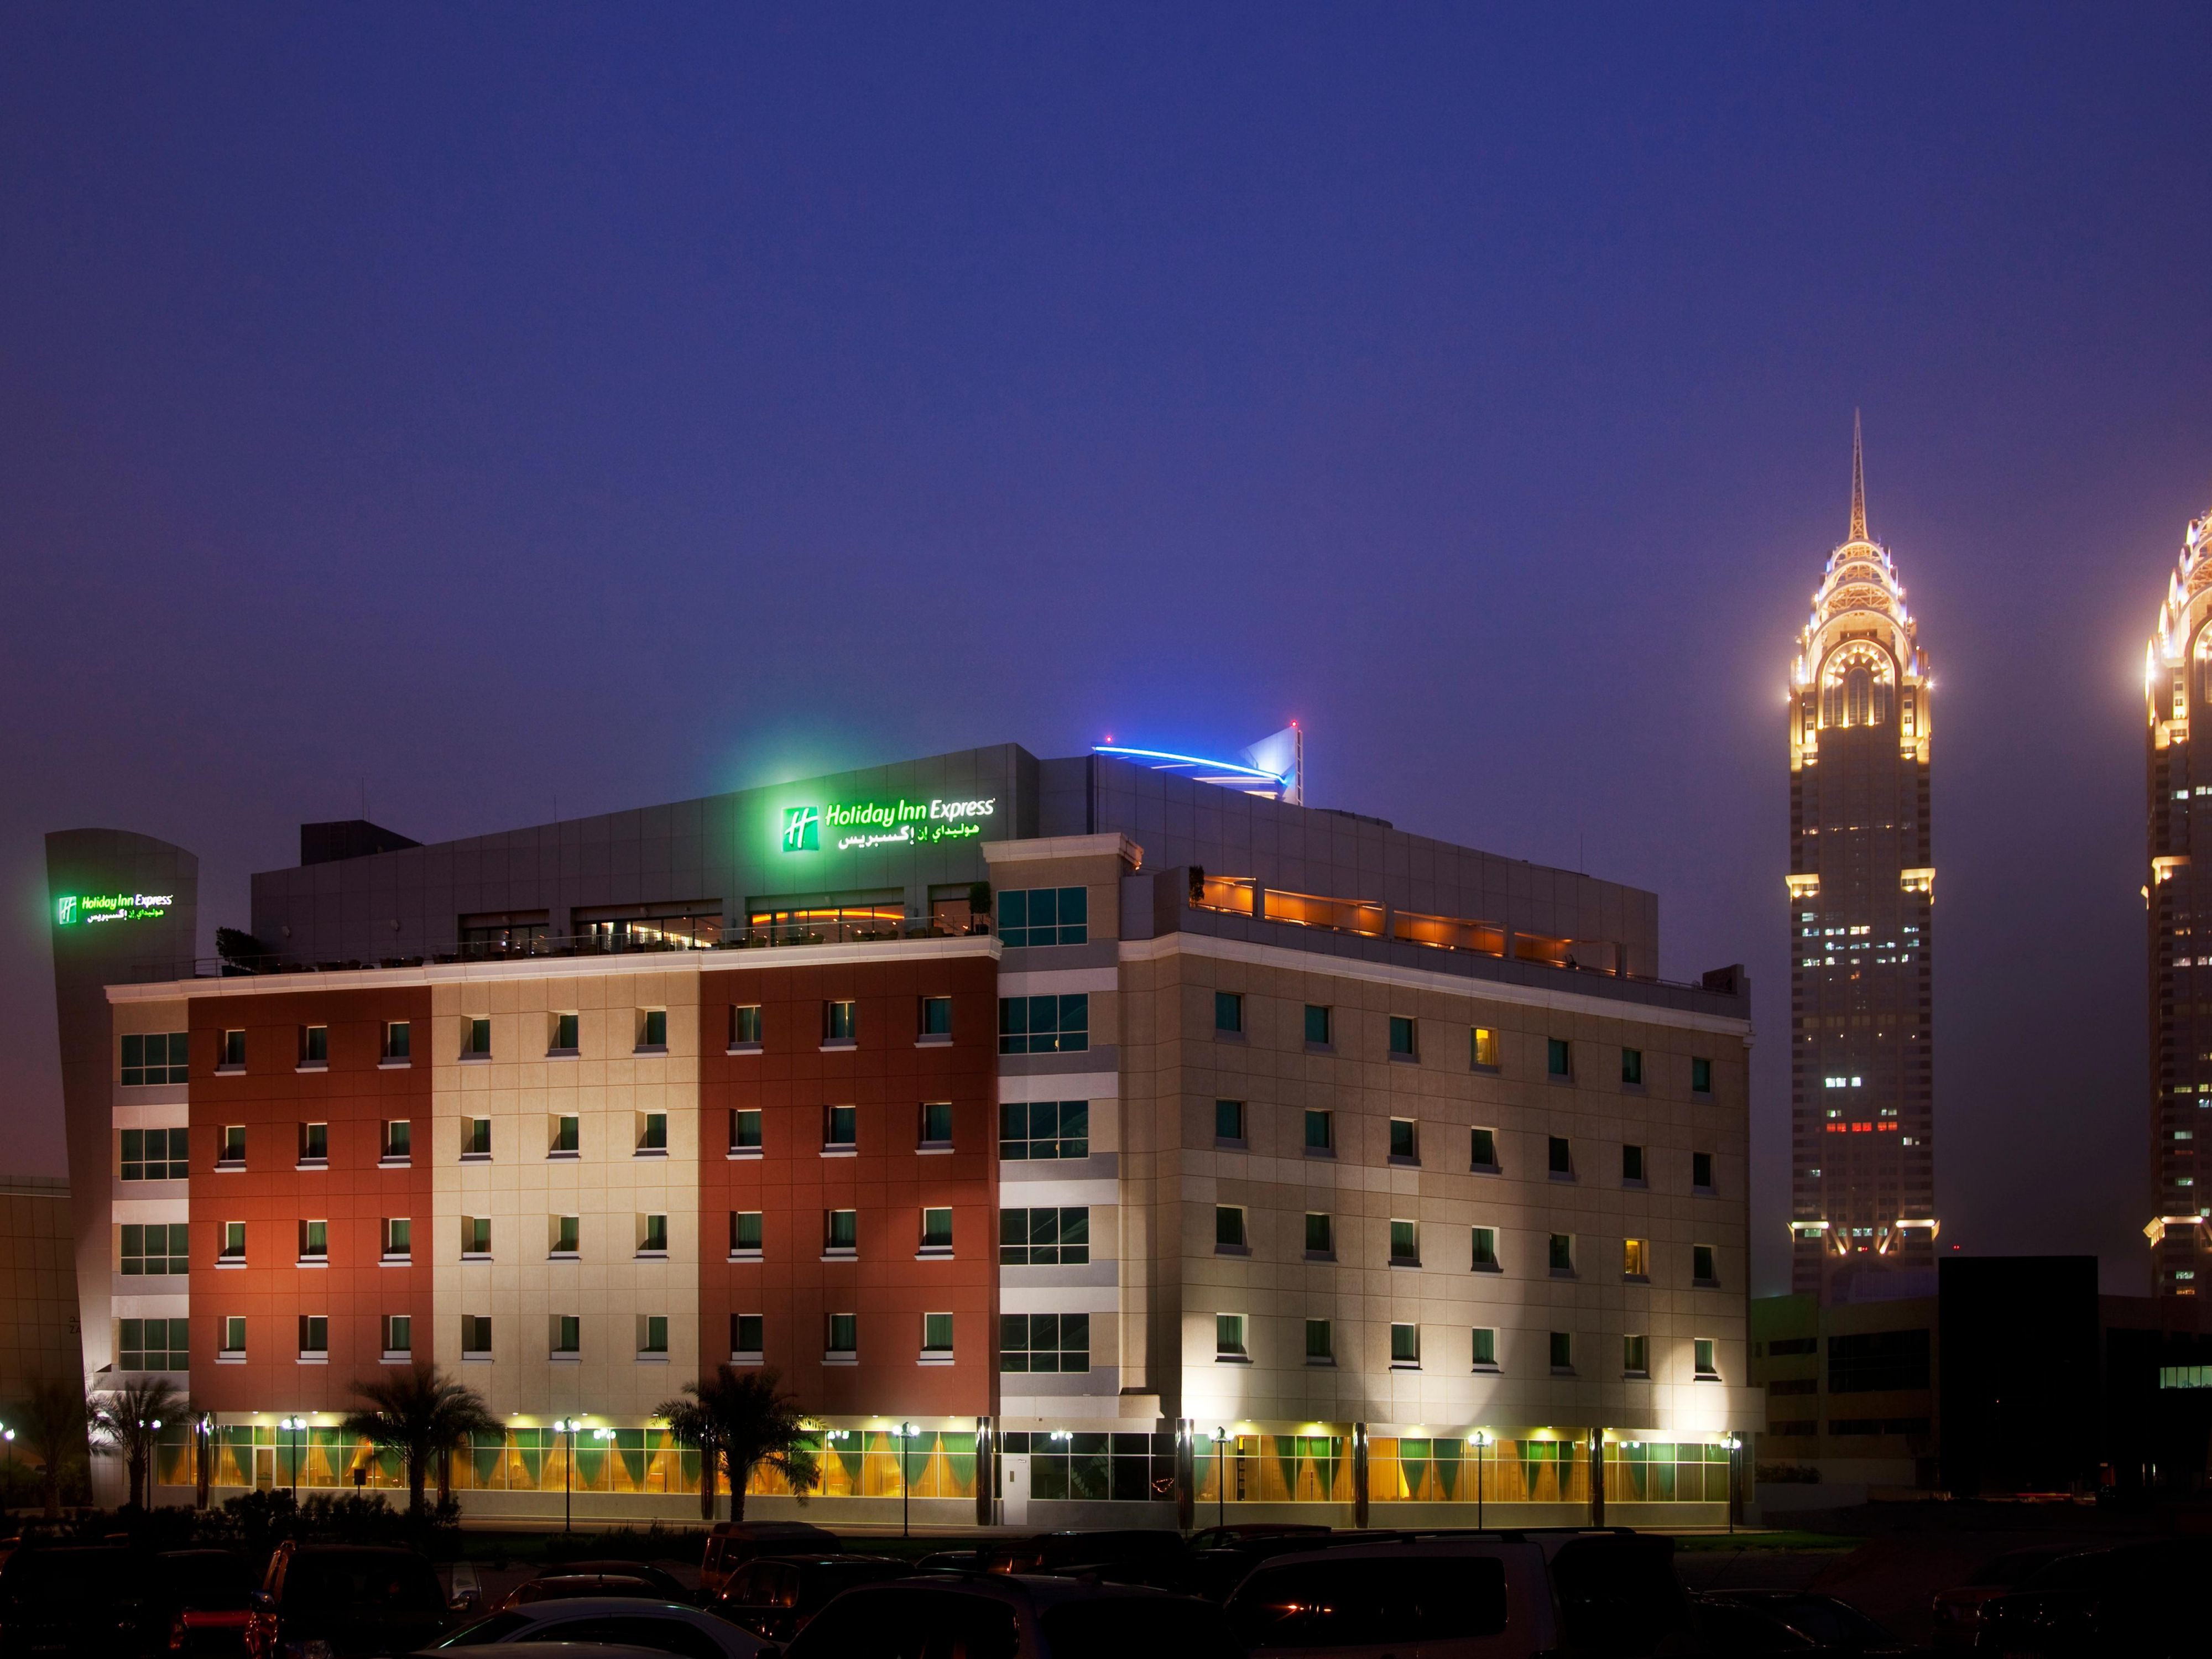 Holiday inn express dubai internet city hotel by ihg reheart Image collections